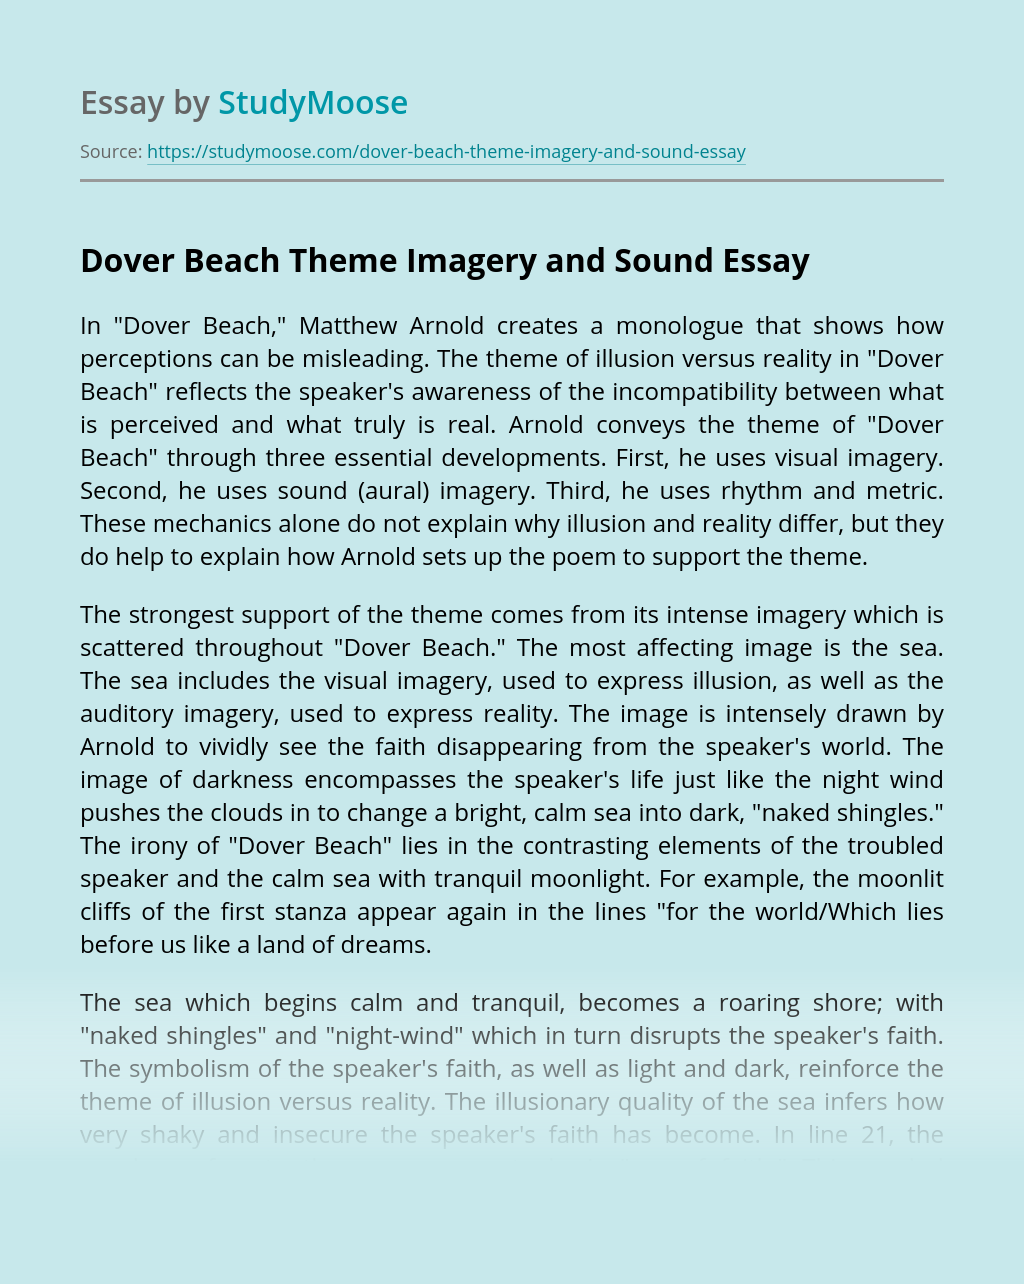 Dover Beach Theme Imagery and Sound